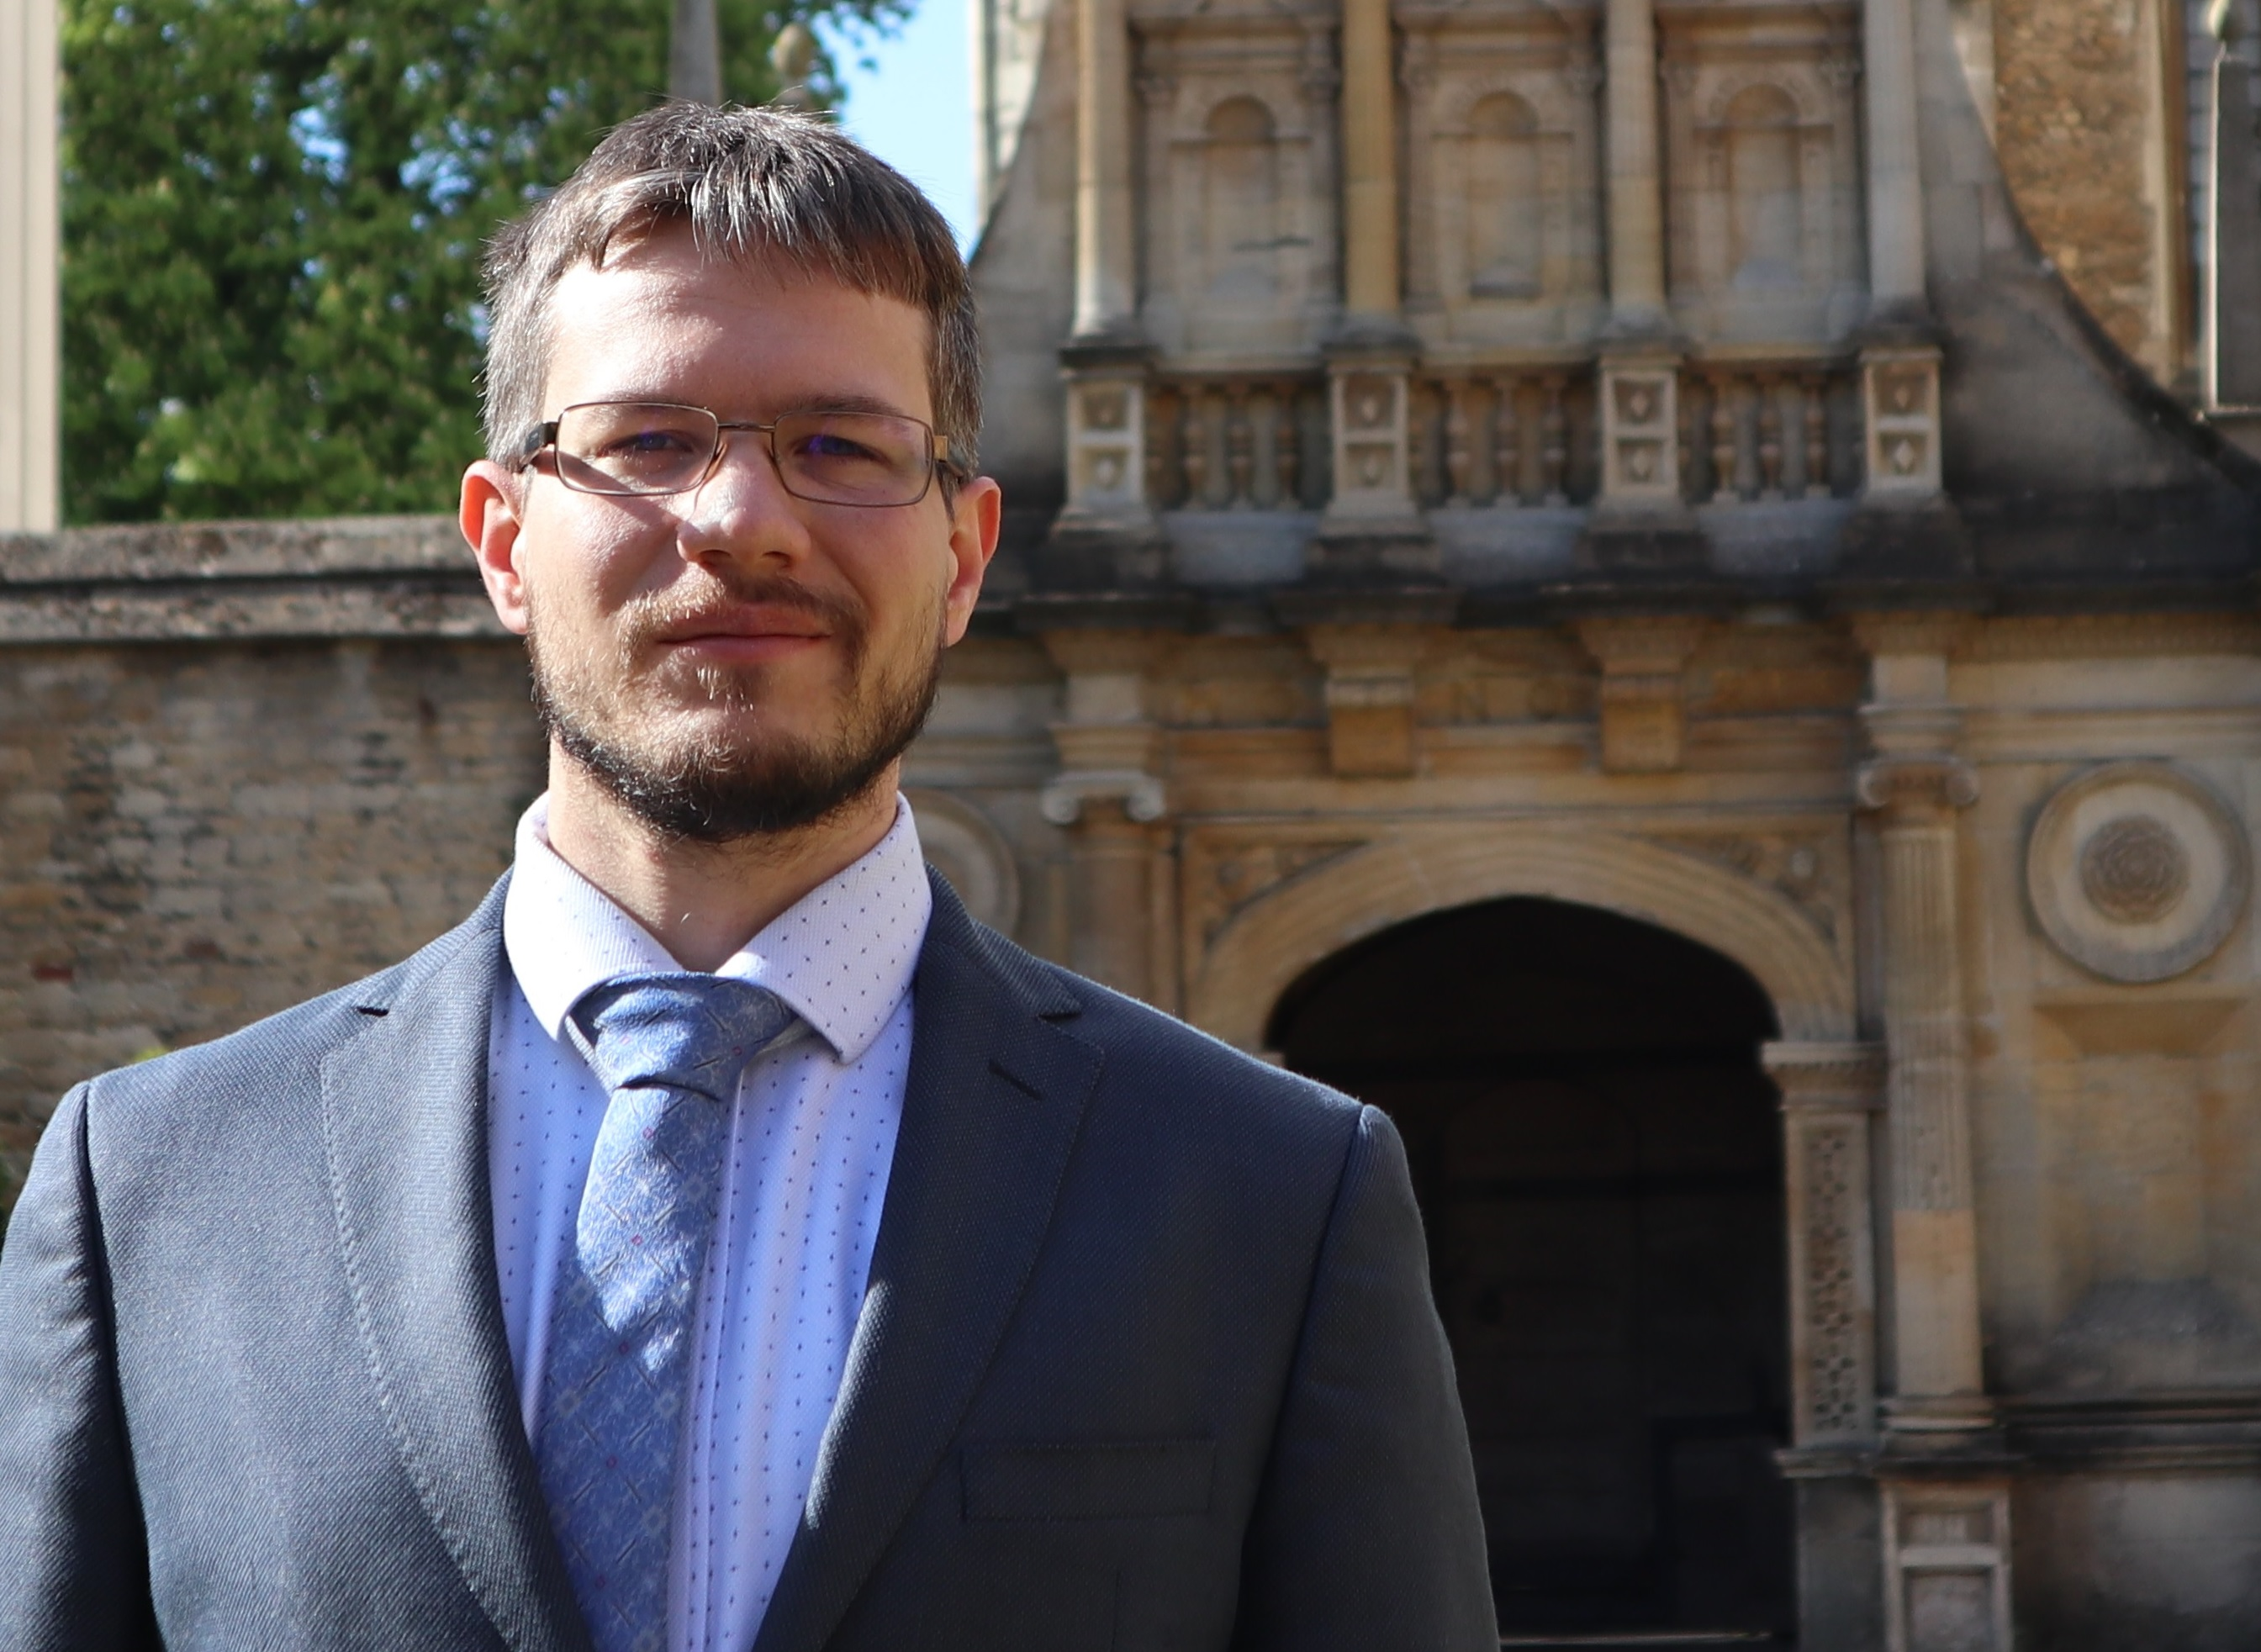 Dr Vedran Sulovsky pictured in front of the Gate of Honour